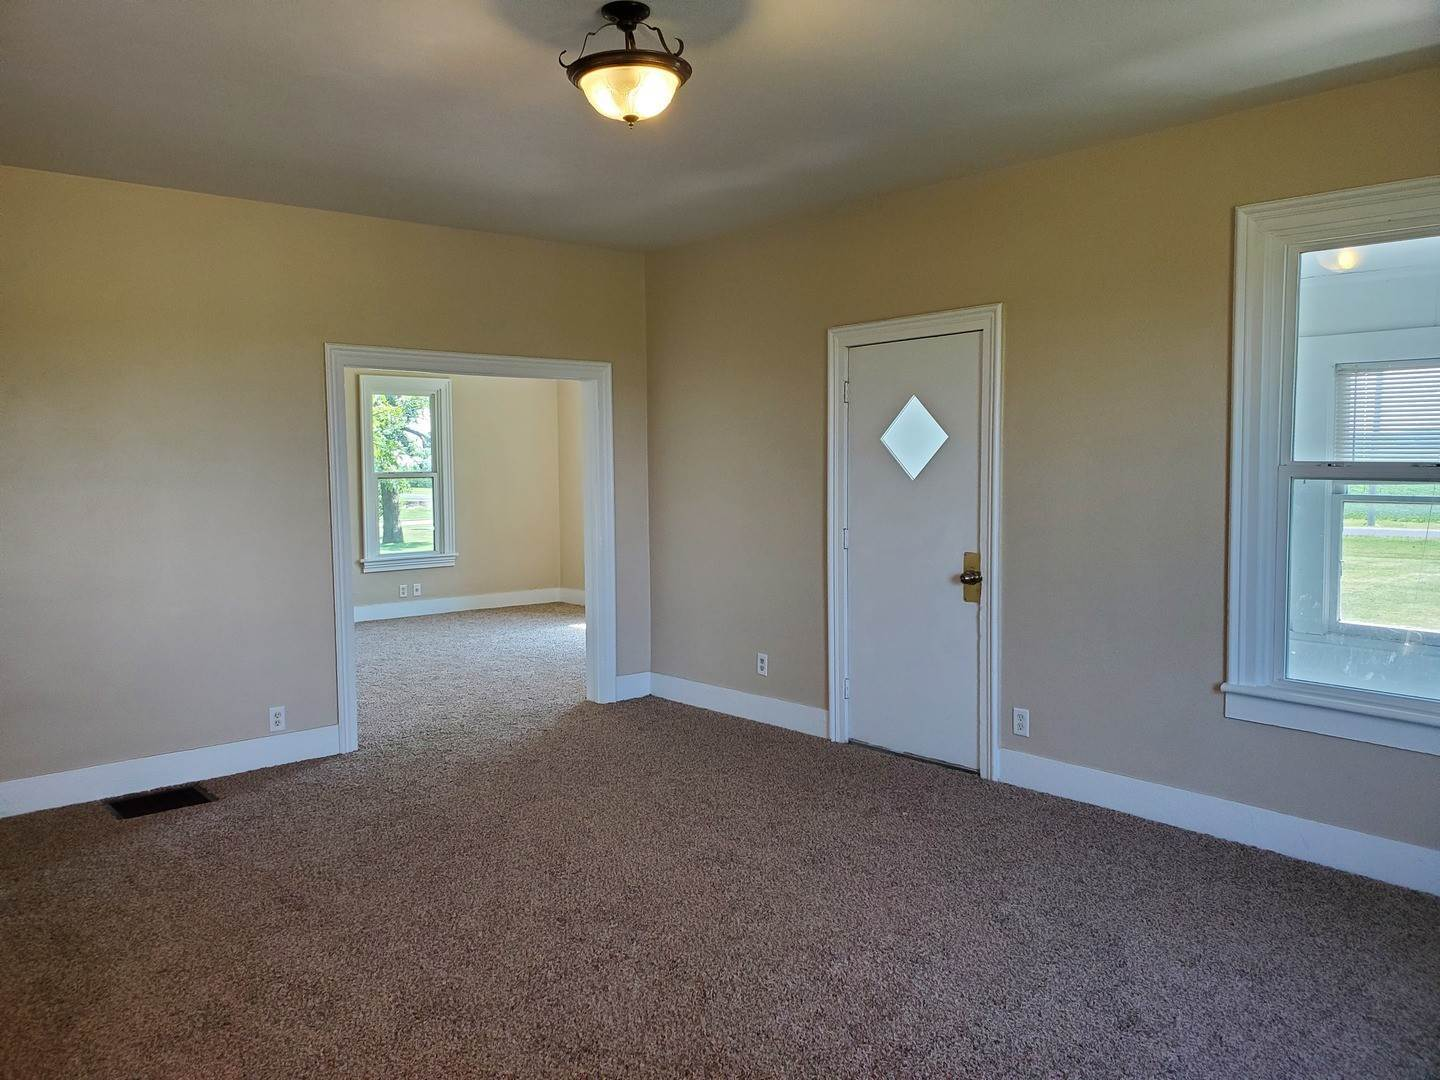 Single Family Homes for Sale at 975 Washington Road Prophetstown, Illinois 61277 United States